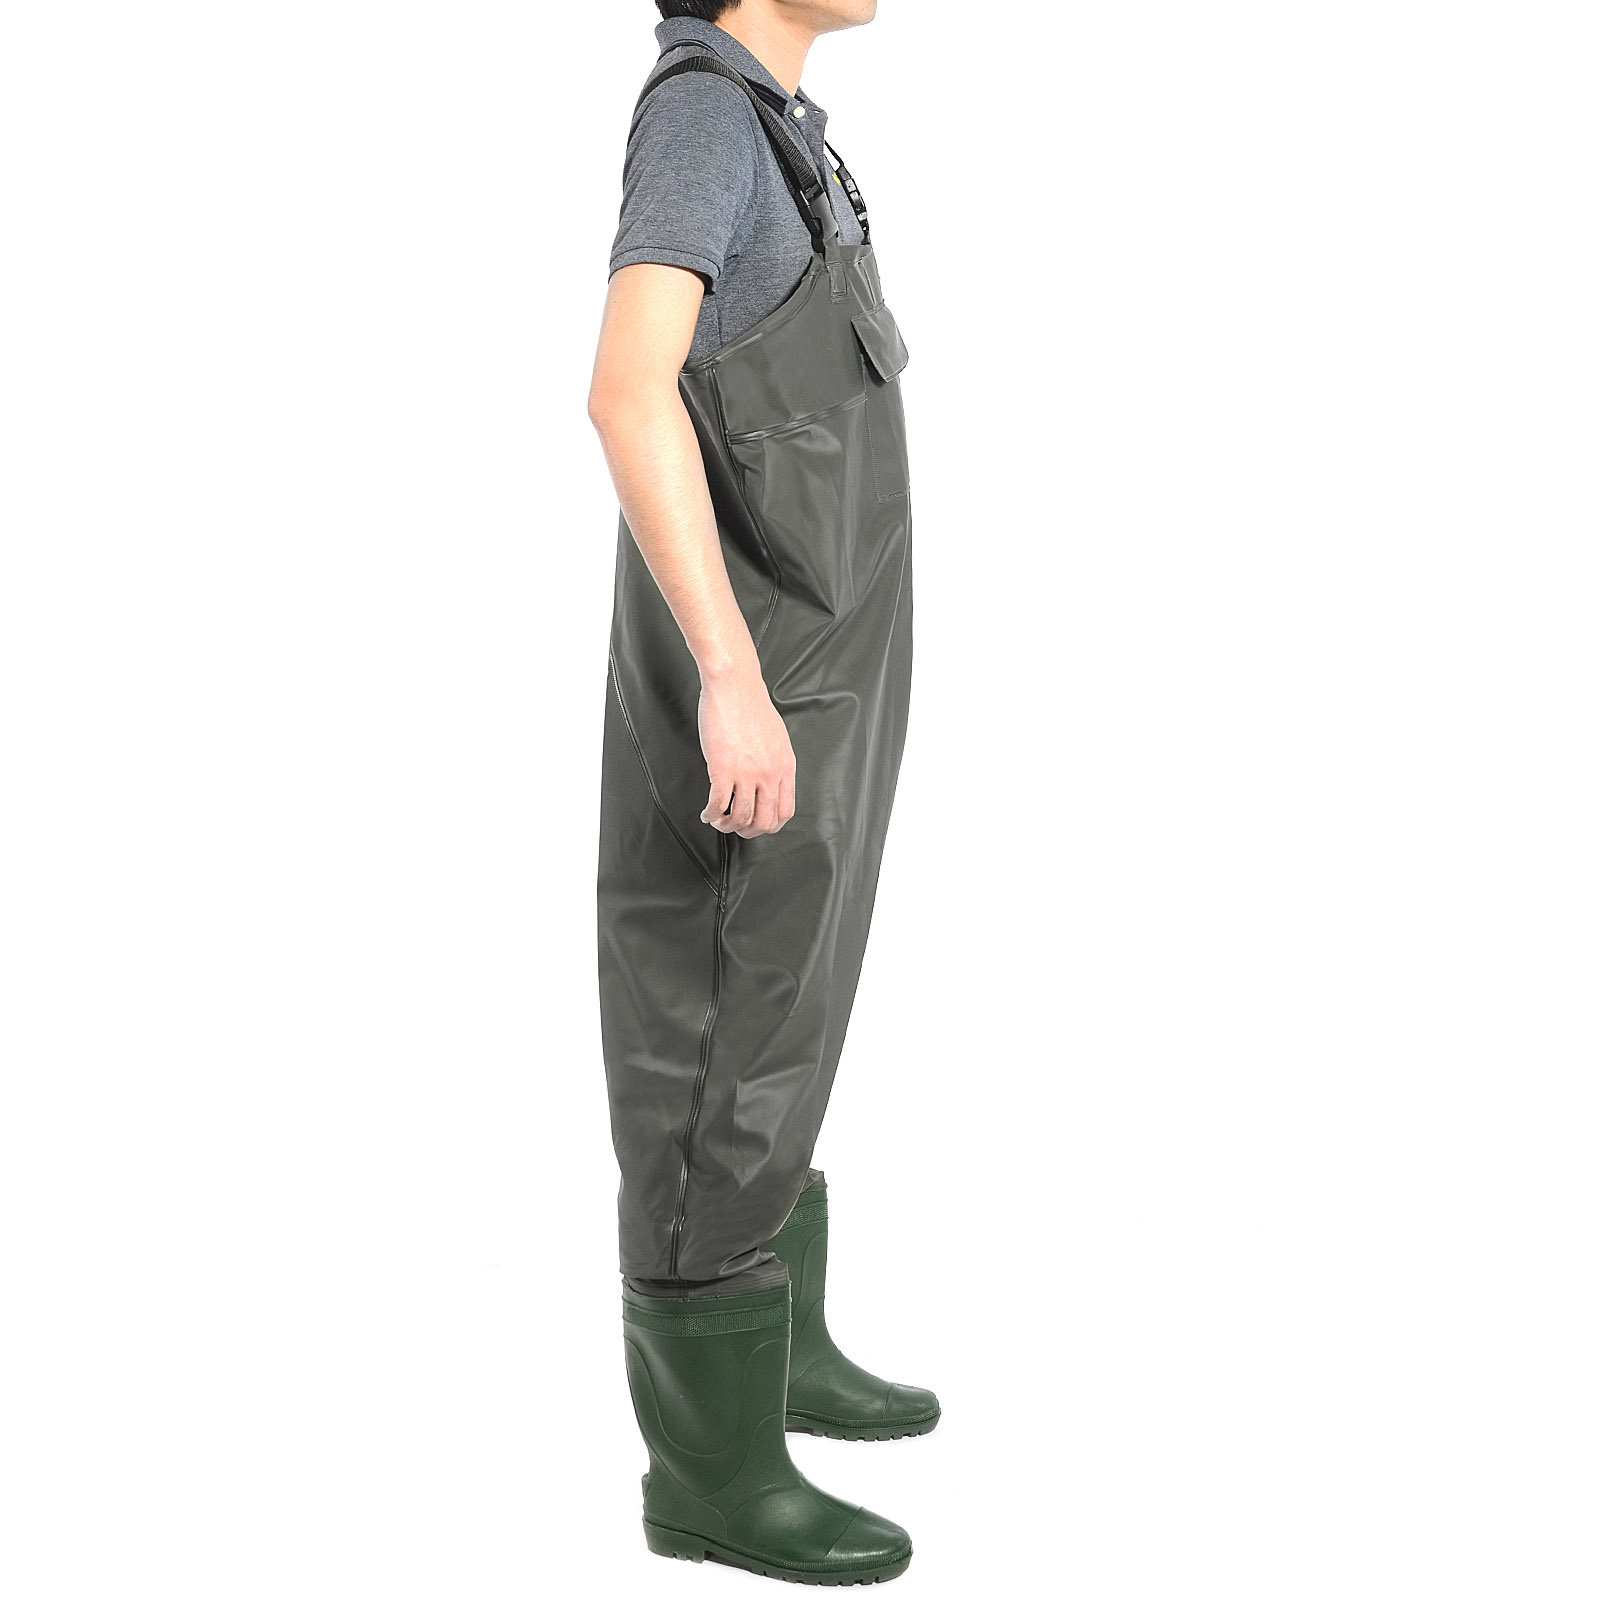 Pvc fishing chest waders waterproof size 8 muck wader fly for Chest waders for fishing